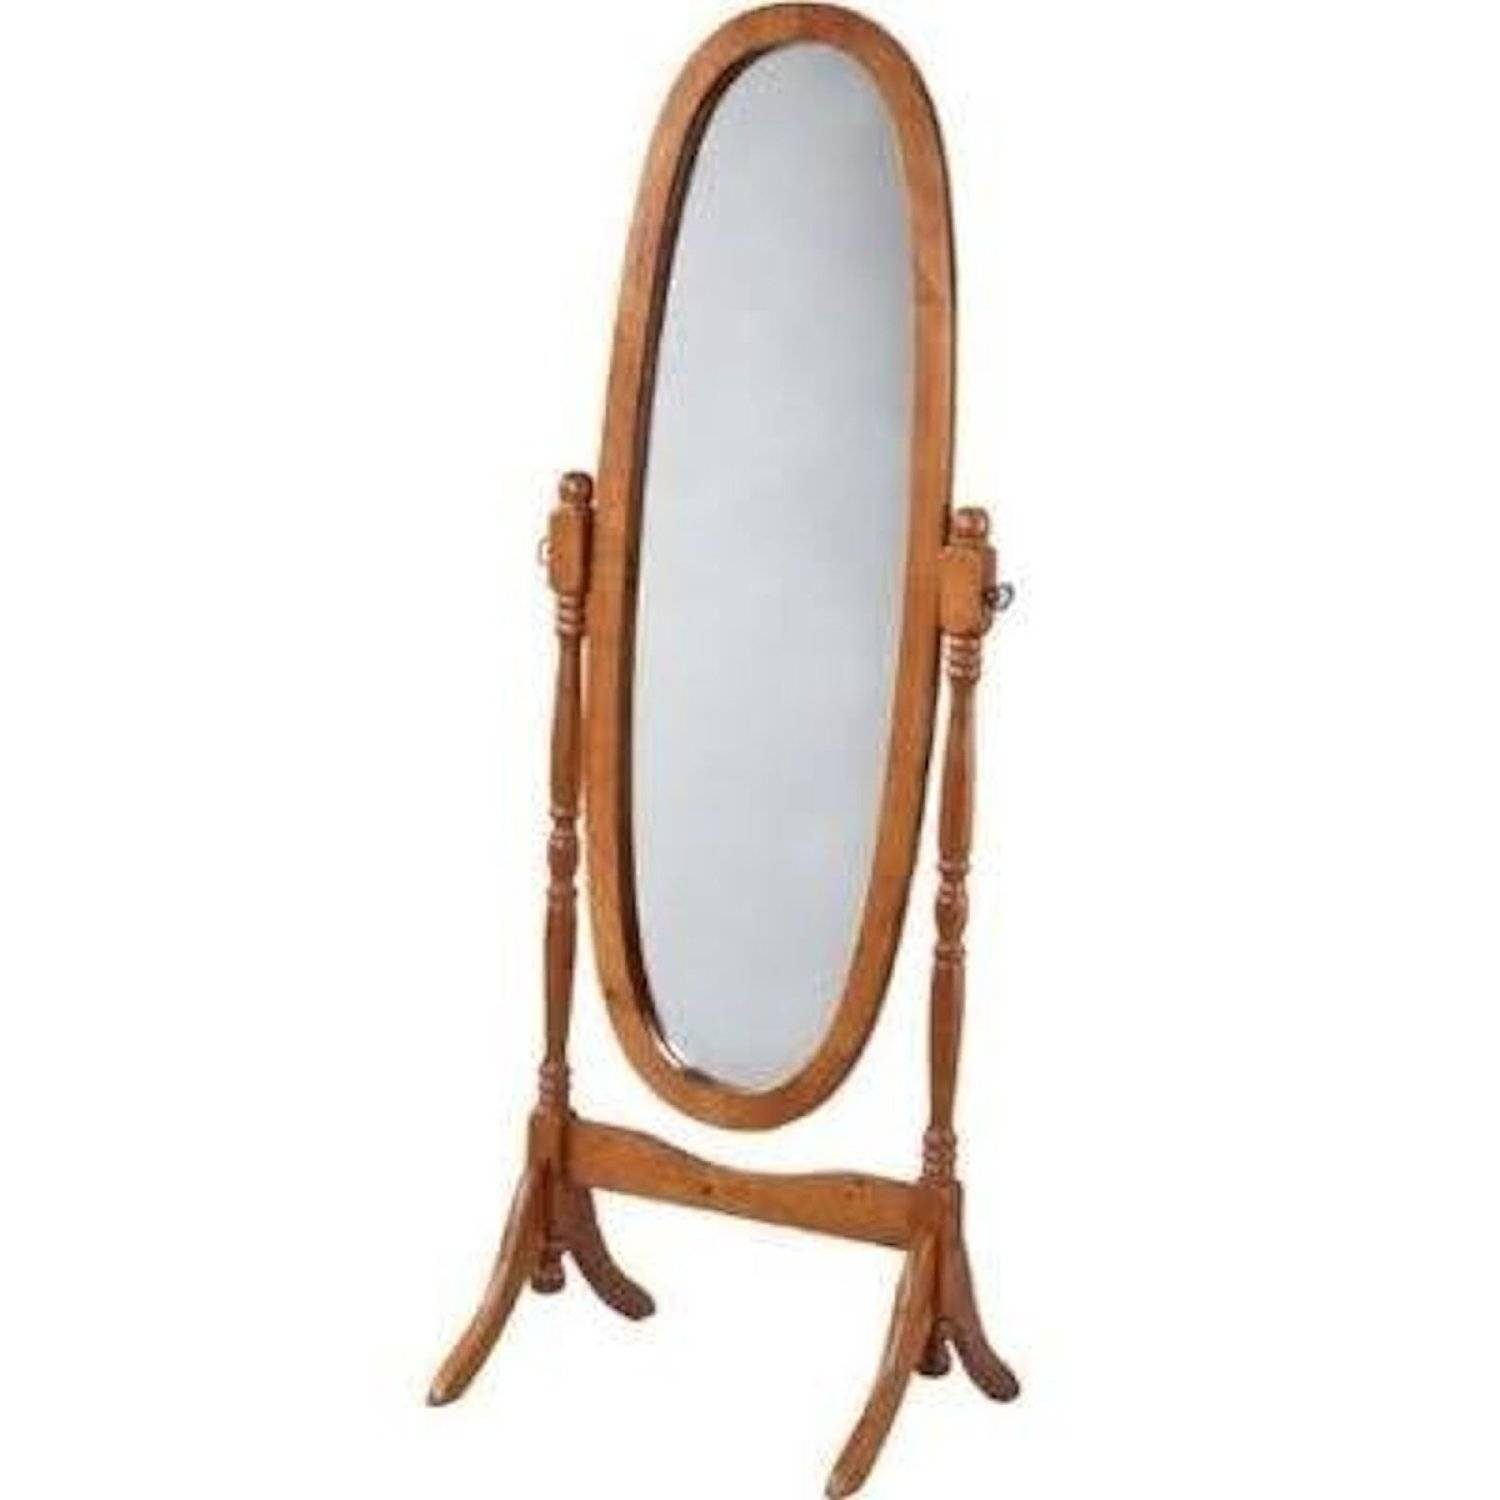 Homeware: Oval Full Length Standing Mirror | Large Floor Mirrors regarding Oval Freestanding Mirrors (Image 21 of 25)